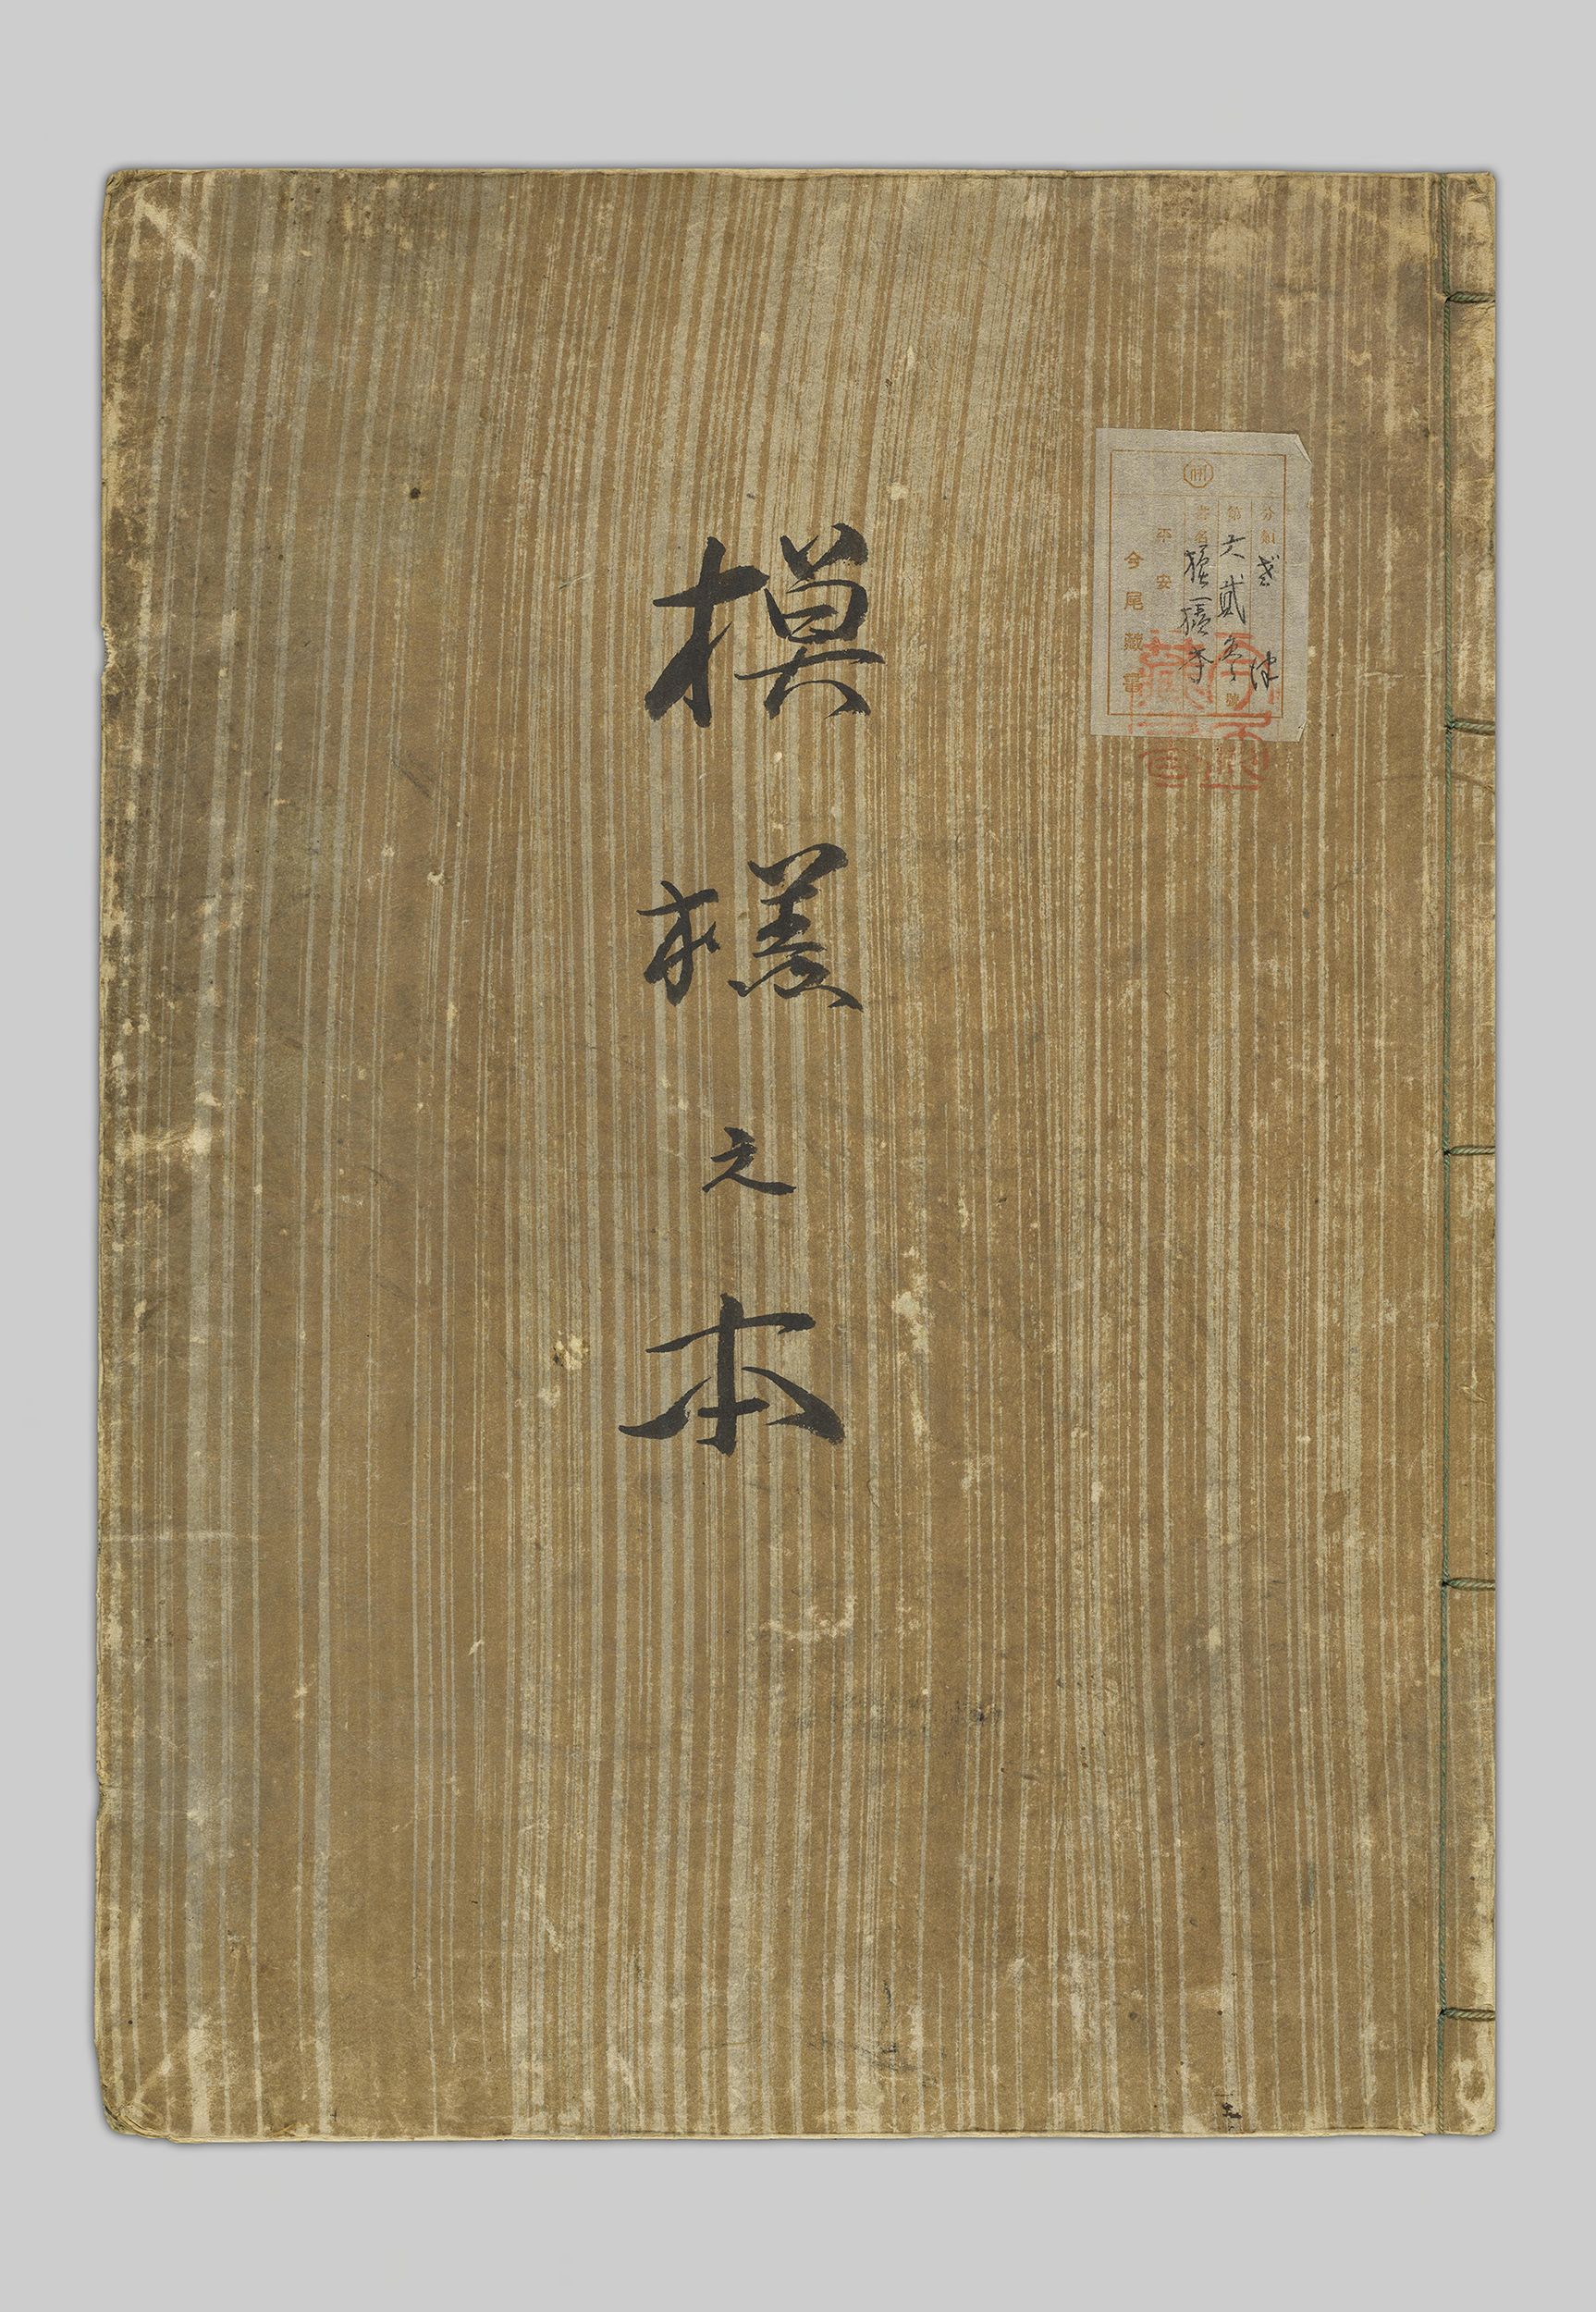 The front cover of Moyō no hon 模様之本, or pattern book.